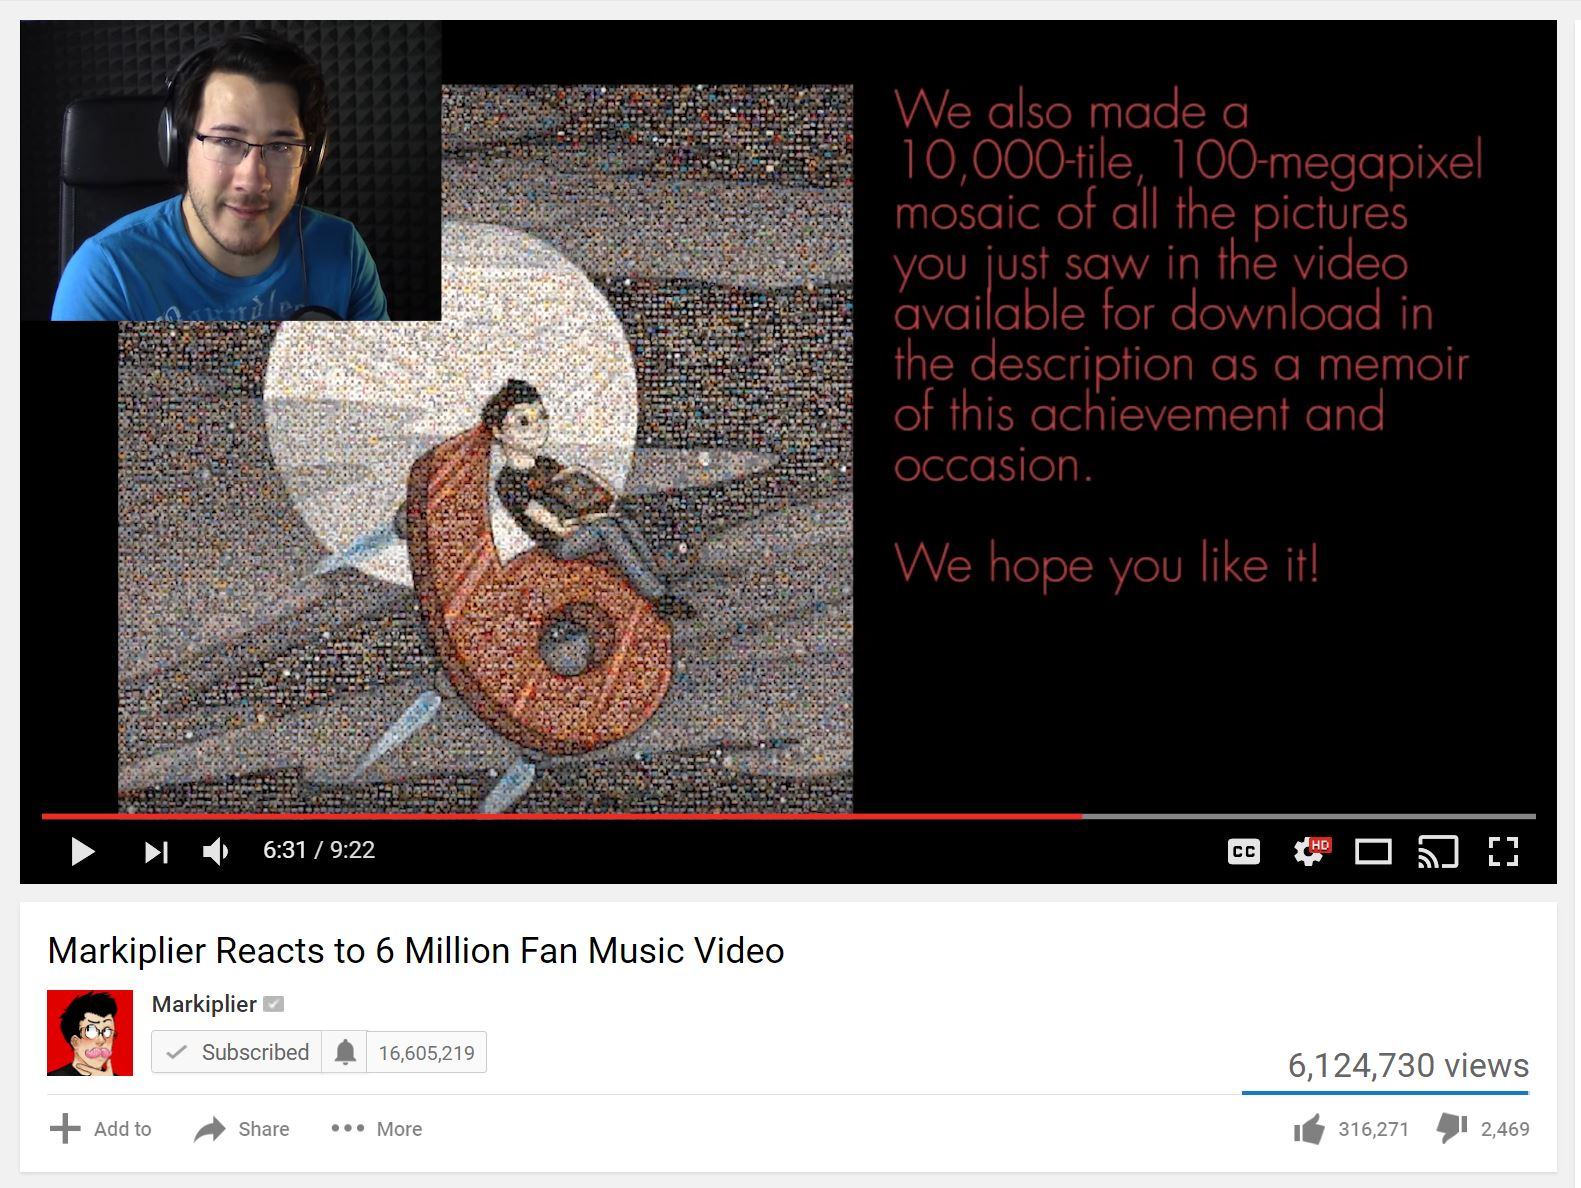 When Markiplier, one of the most popular YouTubers, reached six million subscribers his fans made a video showing their appreciation for all of his hard work. This gesture, and the emotional impact it had (with Markiplier quickly ending up in tears), shows the uniqueness of YouTube's audience-creator relationship.